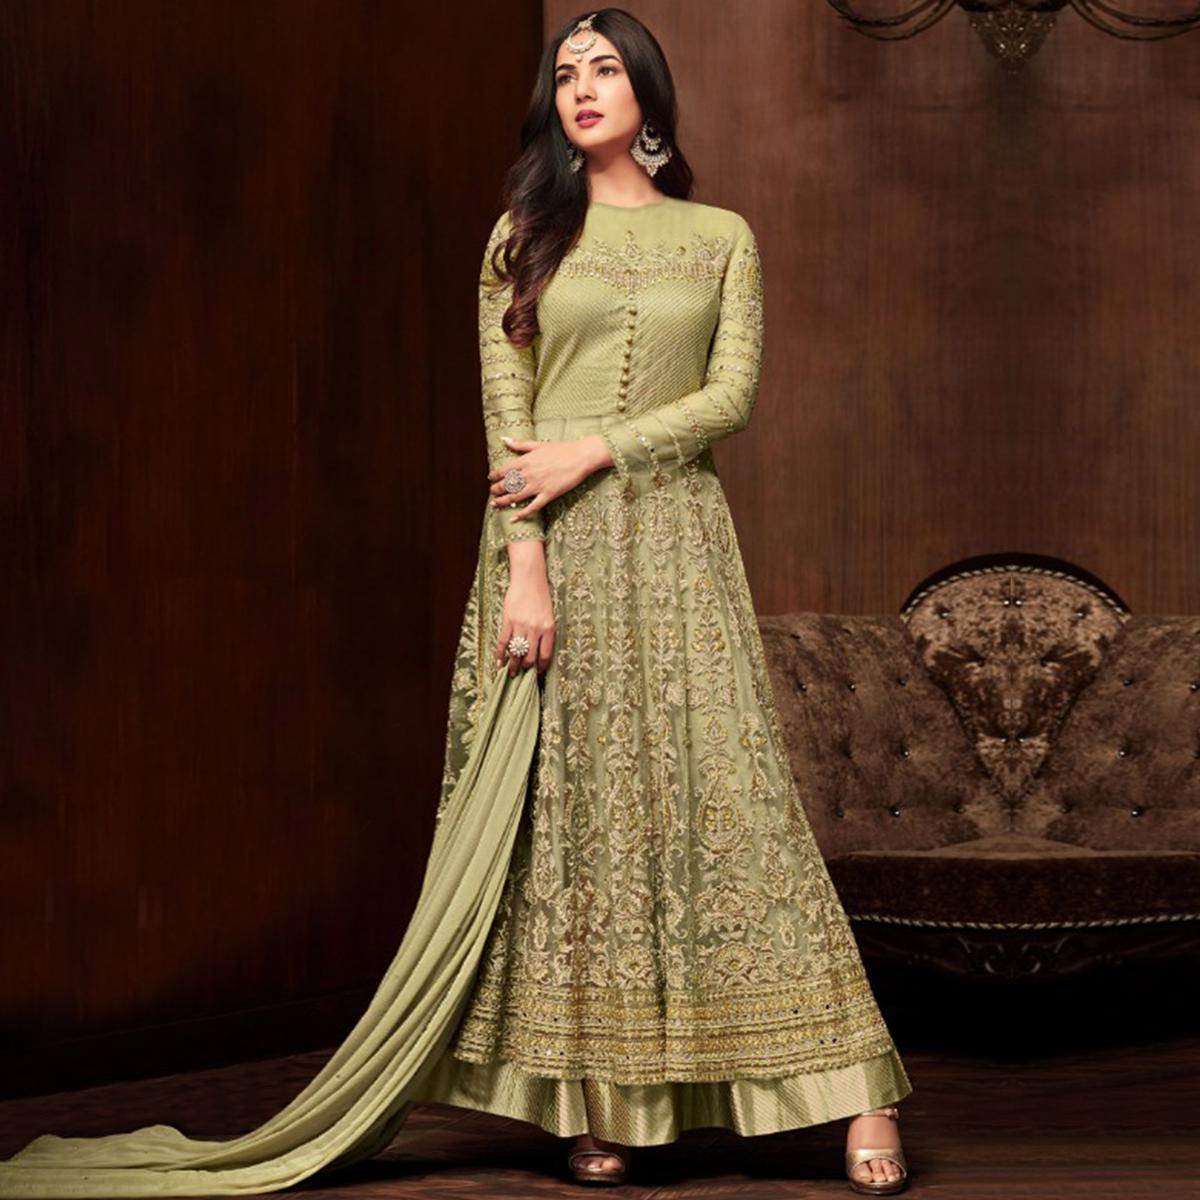 Marvellous Green Colored Partywear Embroidered Netted Lehenga Kameez